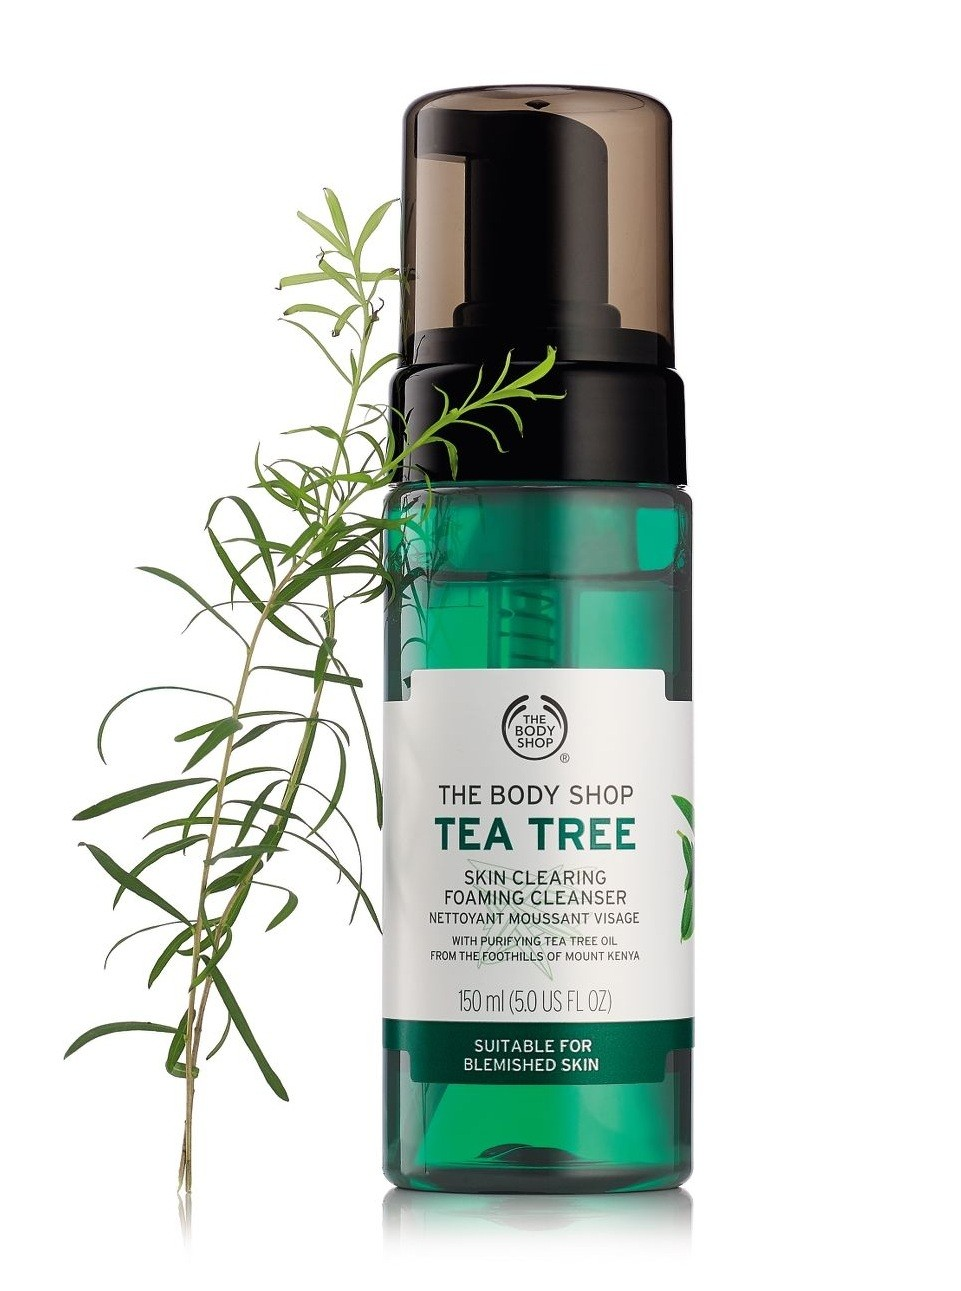 sua-rua-mat-tri-mun-the-body-shop-tea-tree-skin-clearing-foaming-cleanser